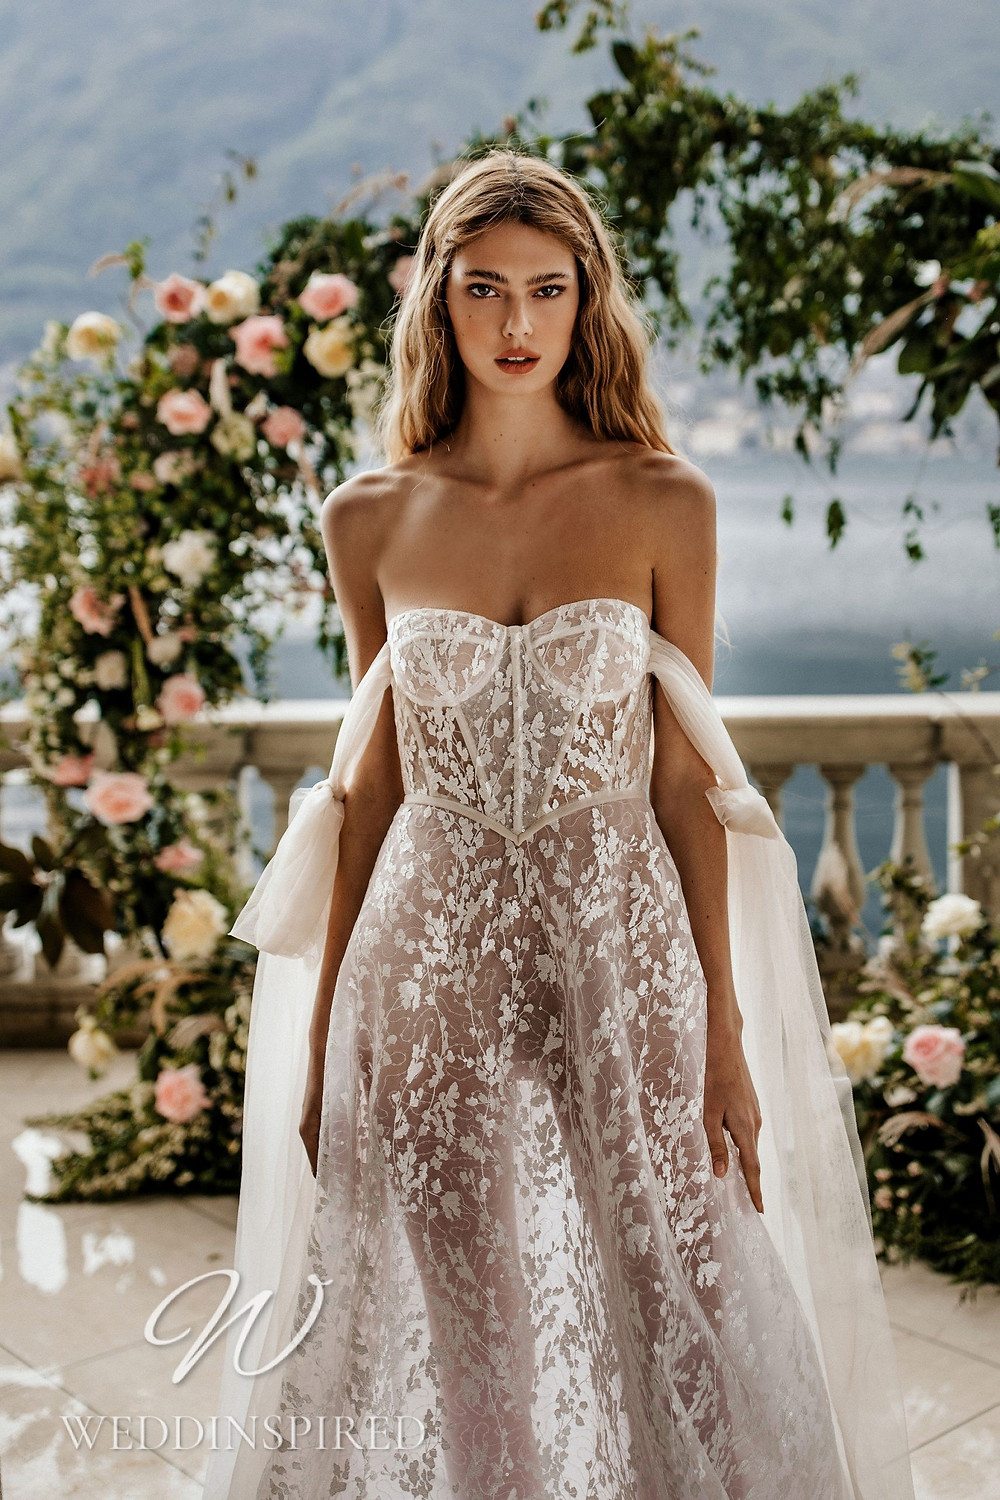 A Berta 2022 strapless lace and tulle A-line wedding dress